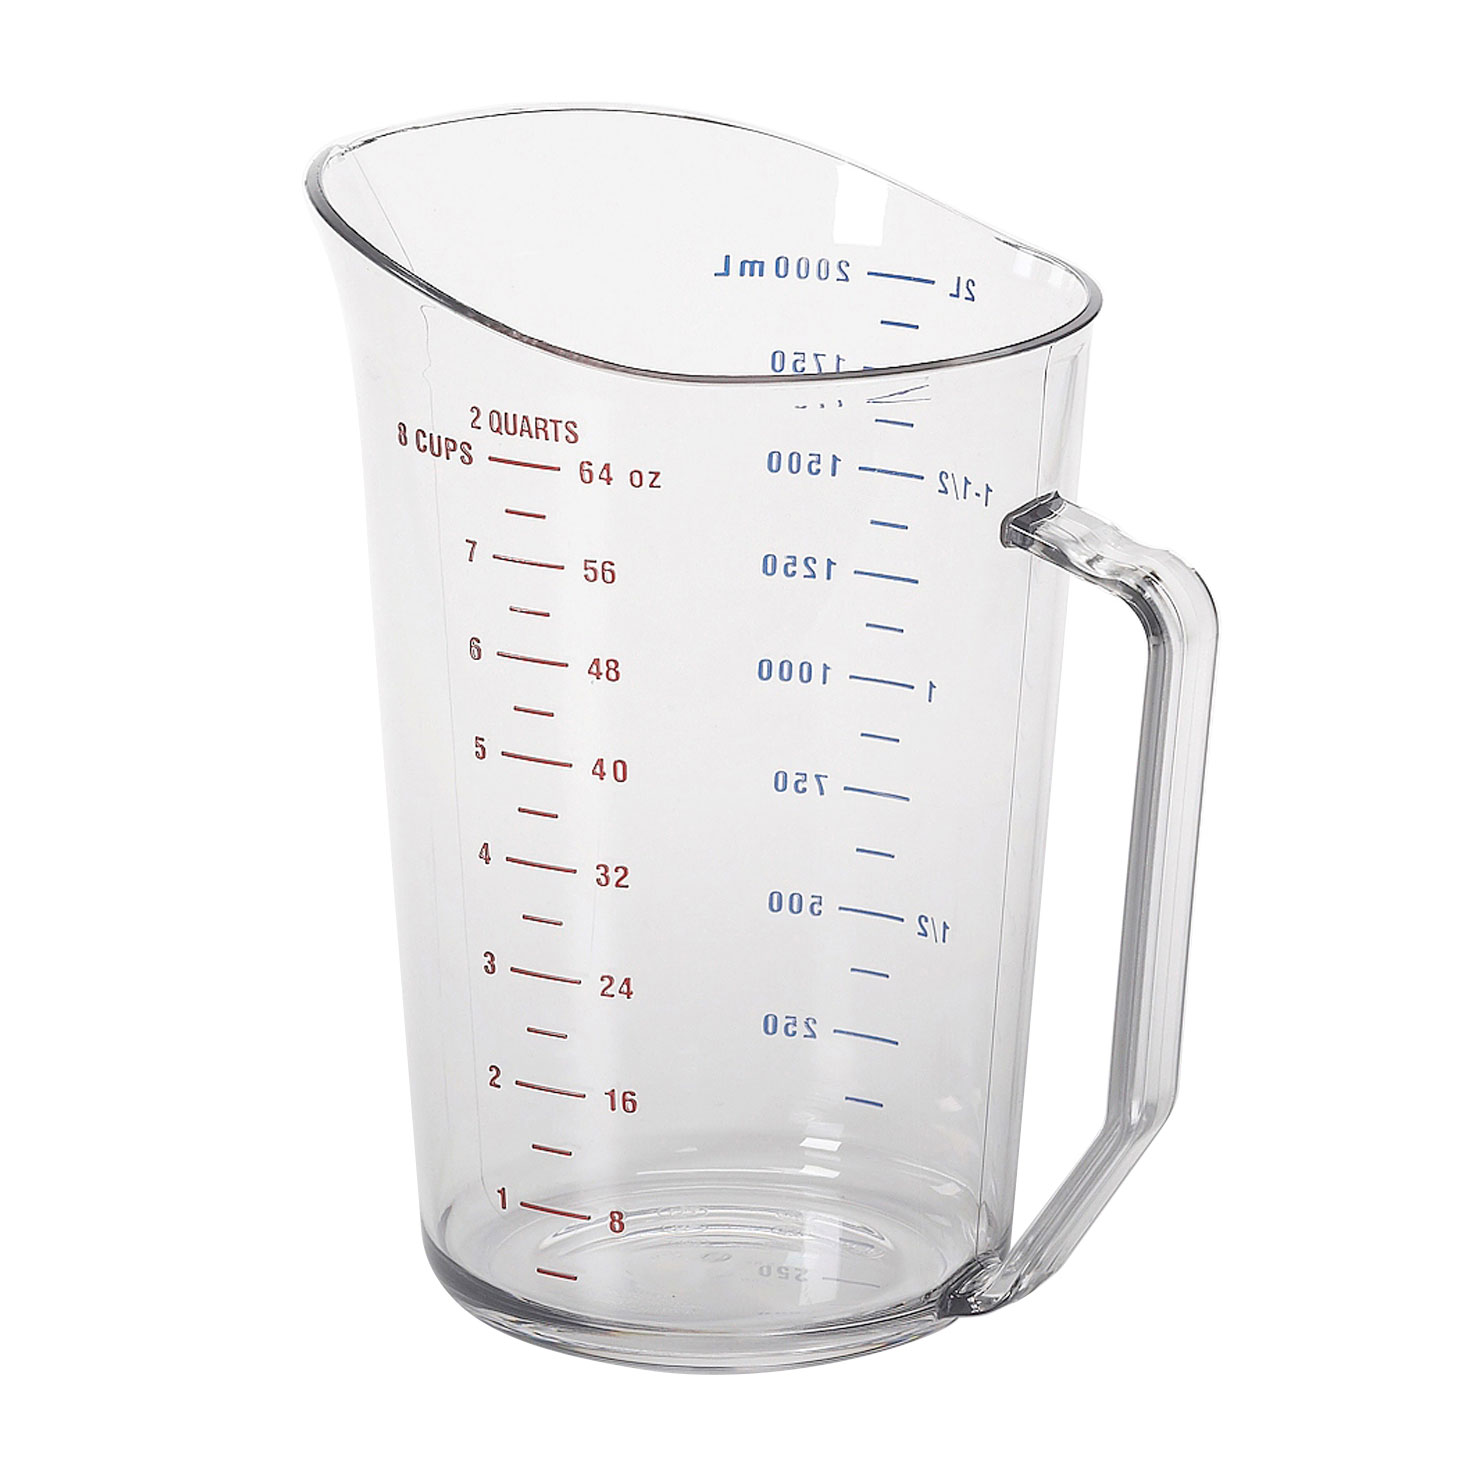 Cambro 200MCCW135 measuring cups